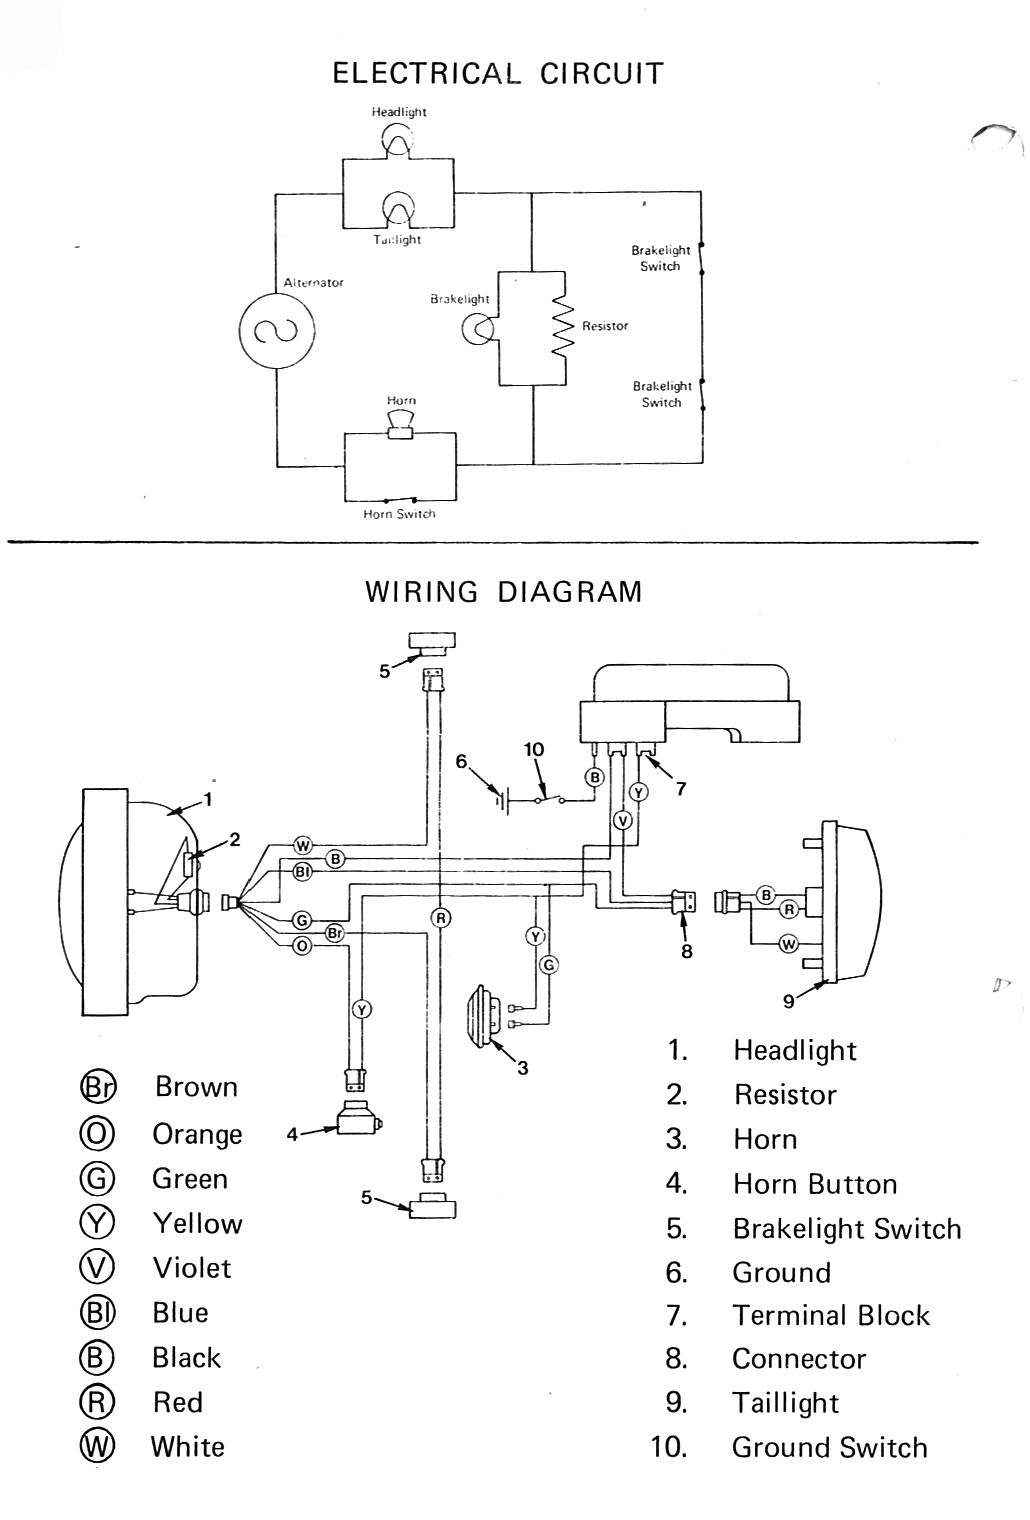 7 Terminal Ignition Switch Wiring Diagram | Wiring Library - 7 Terminal Ignition Switch Wiring Diagram